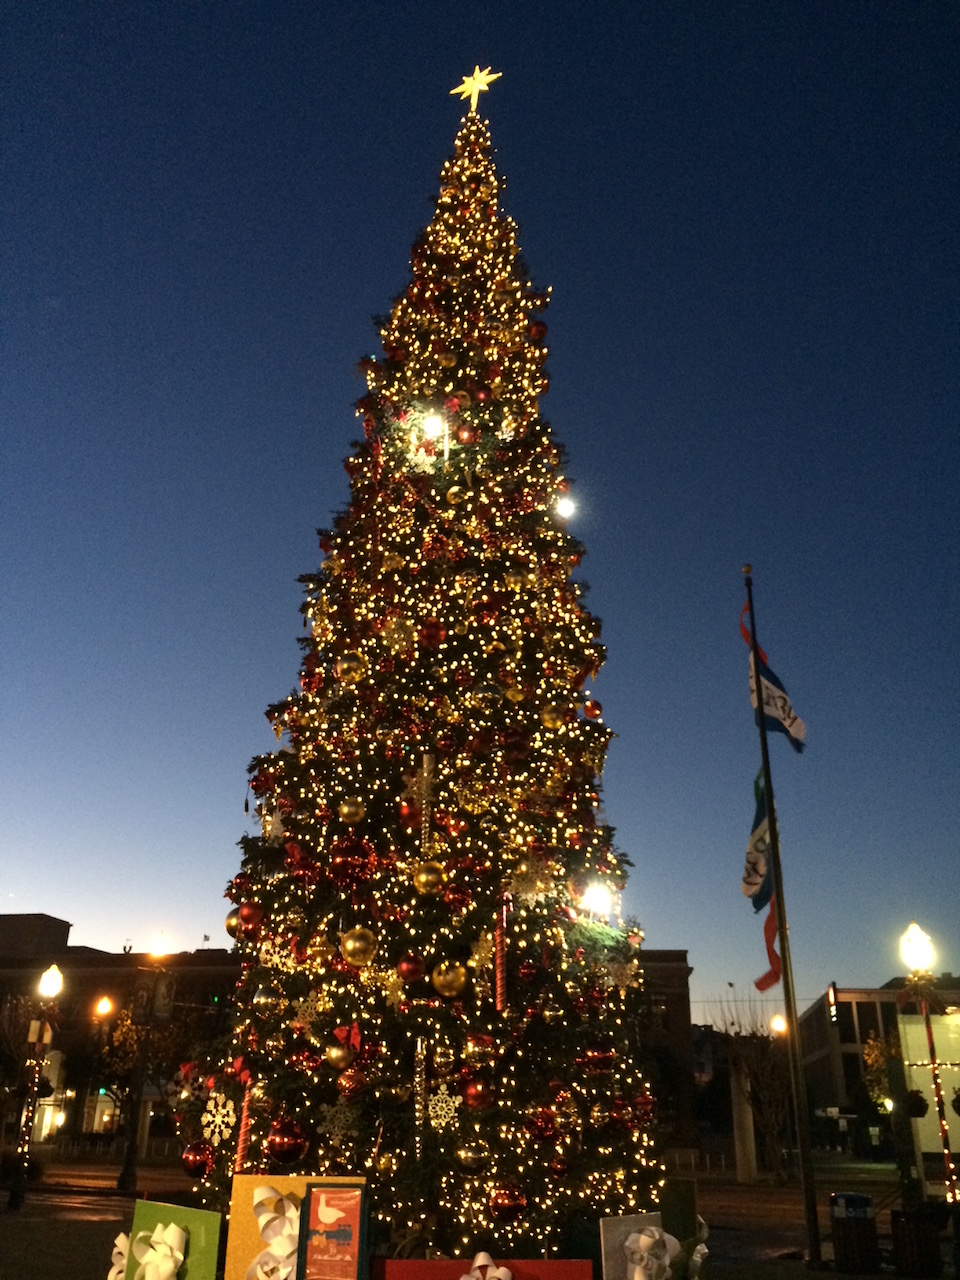 The tree at Pier 39 in 2016. & 2017 San Francisco Holiday Events Roundup | Hoodline azcodes.com